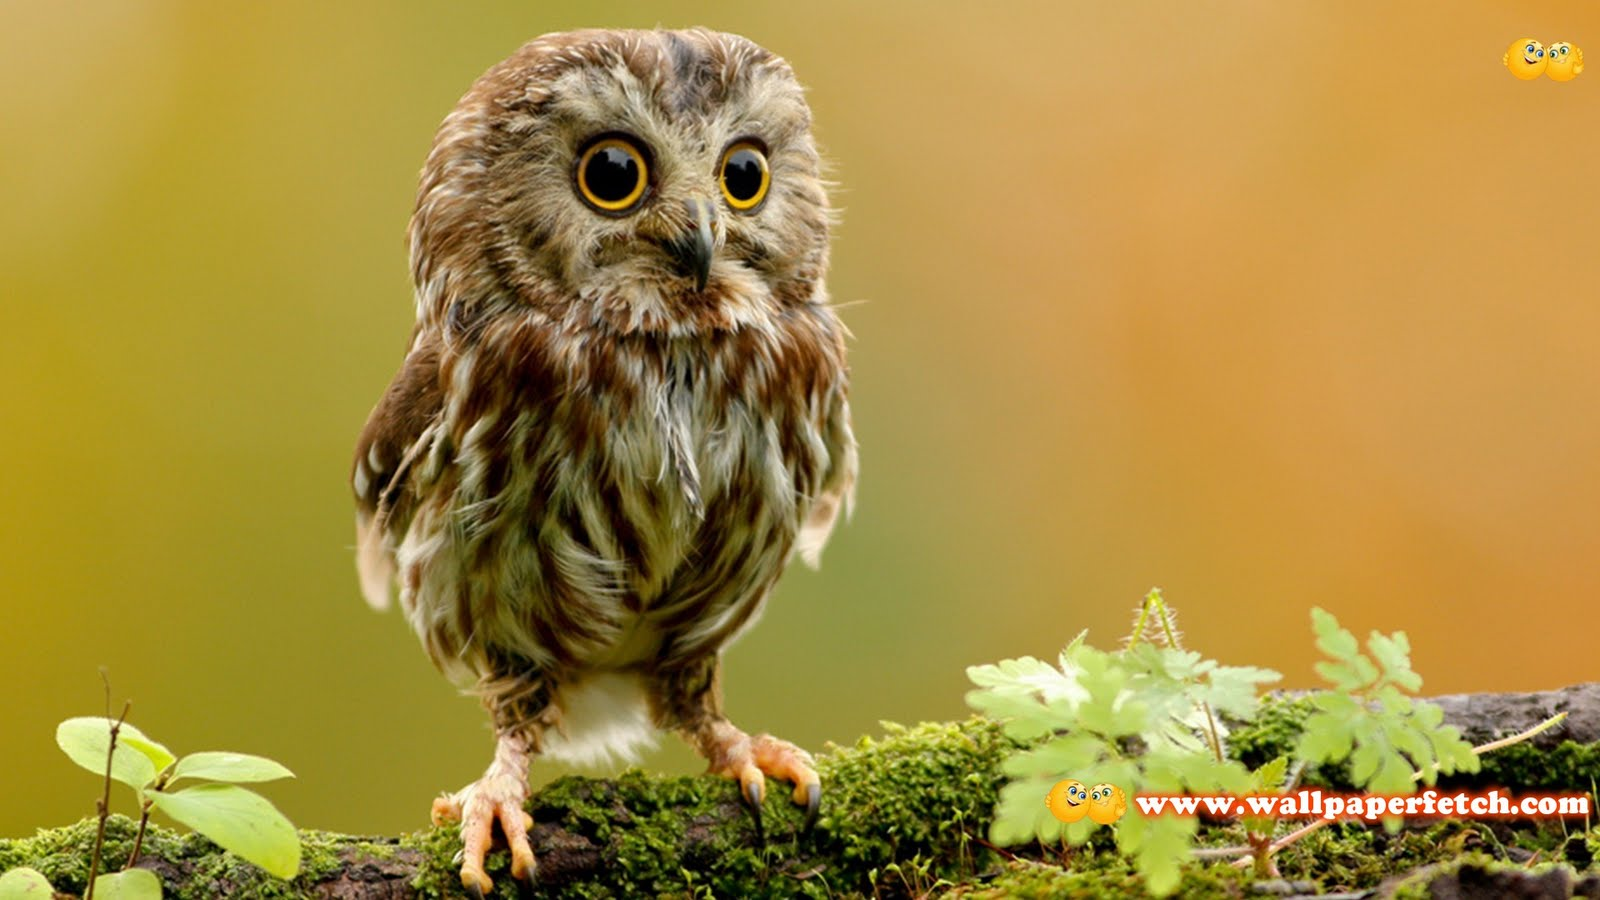 SuperPack Beautiful Animals HD Wallpapers Part 420 1600x900